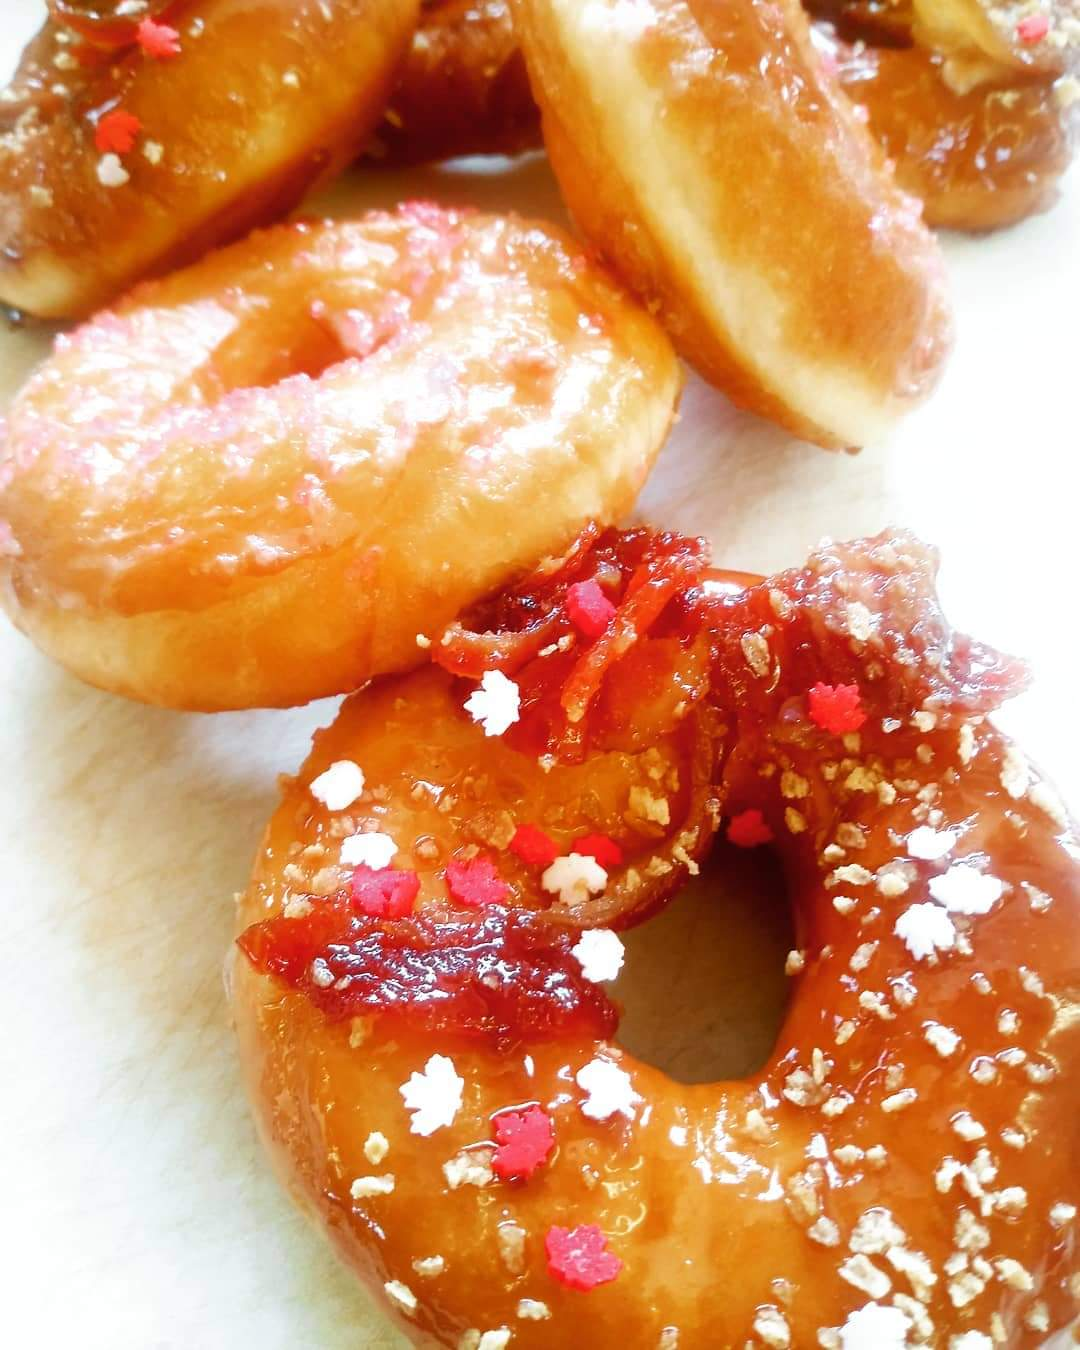 GREAT SUCCESS - Maple Nutella/Bacon Glazed Donuts